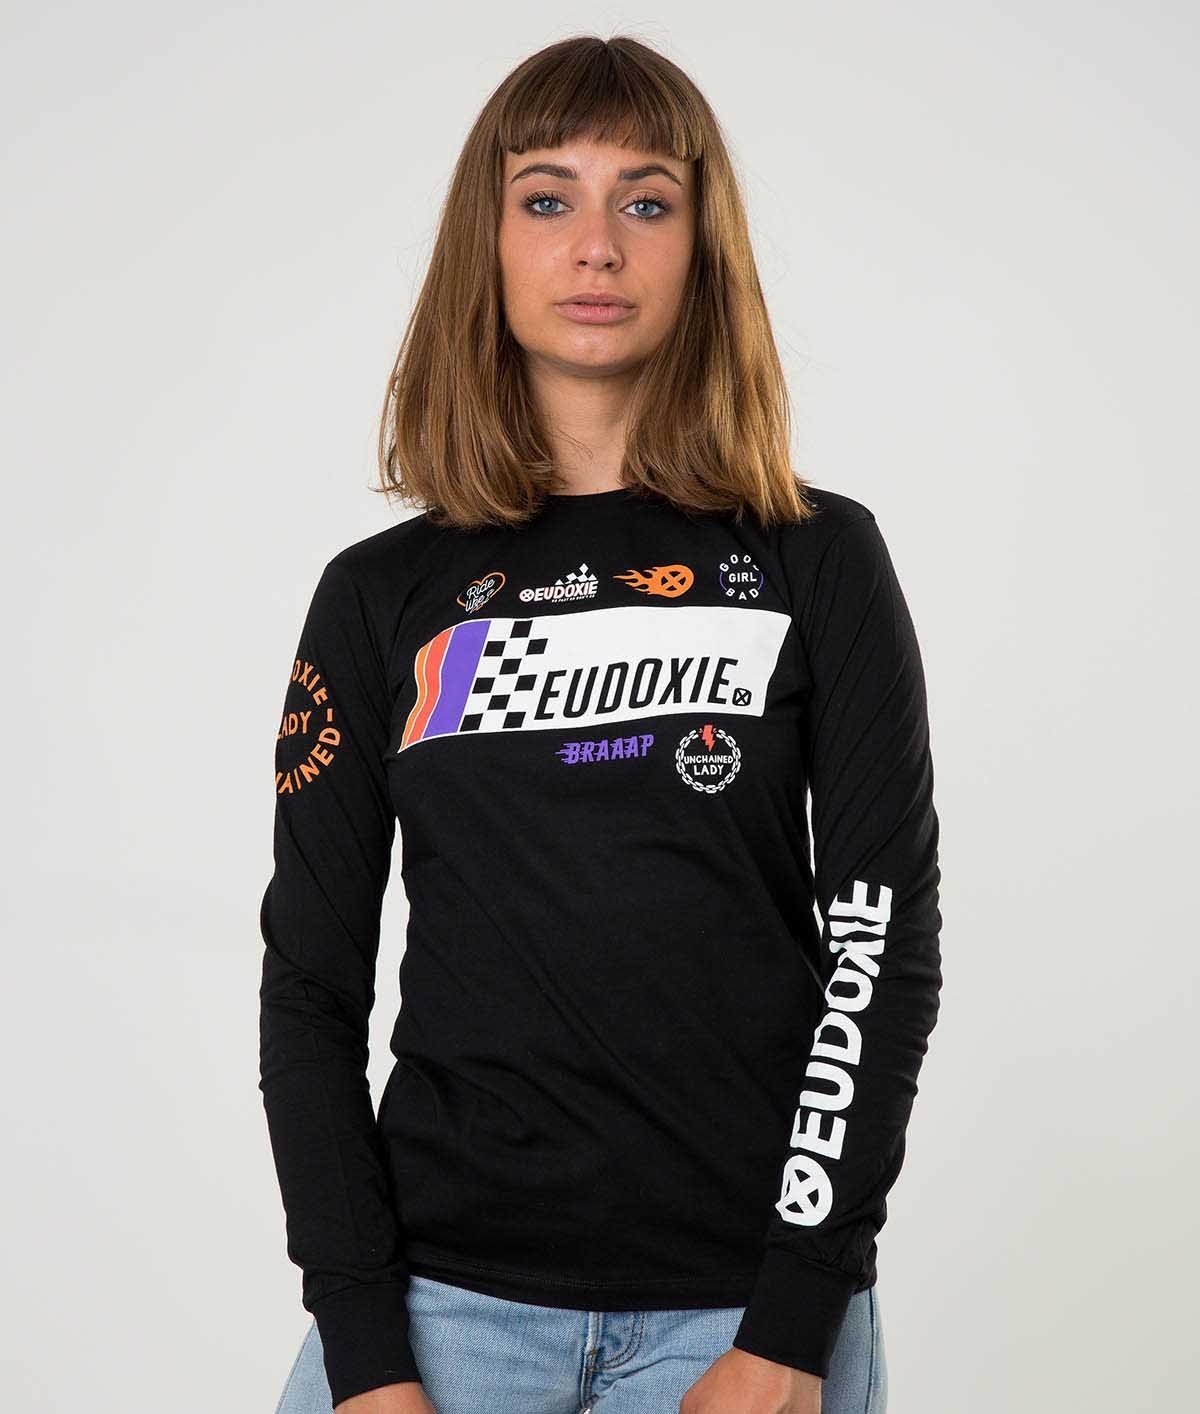 Eudoxie - Eudoxie Fast Black Long Sleeve T'Shirt - T-Shirts - Salt Flats Clothing